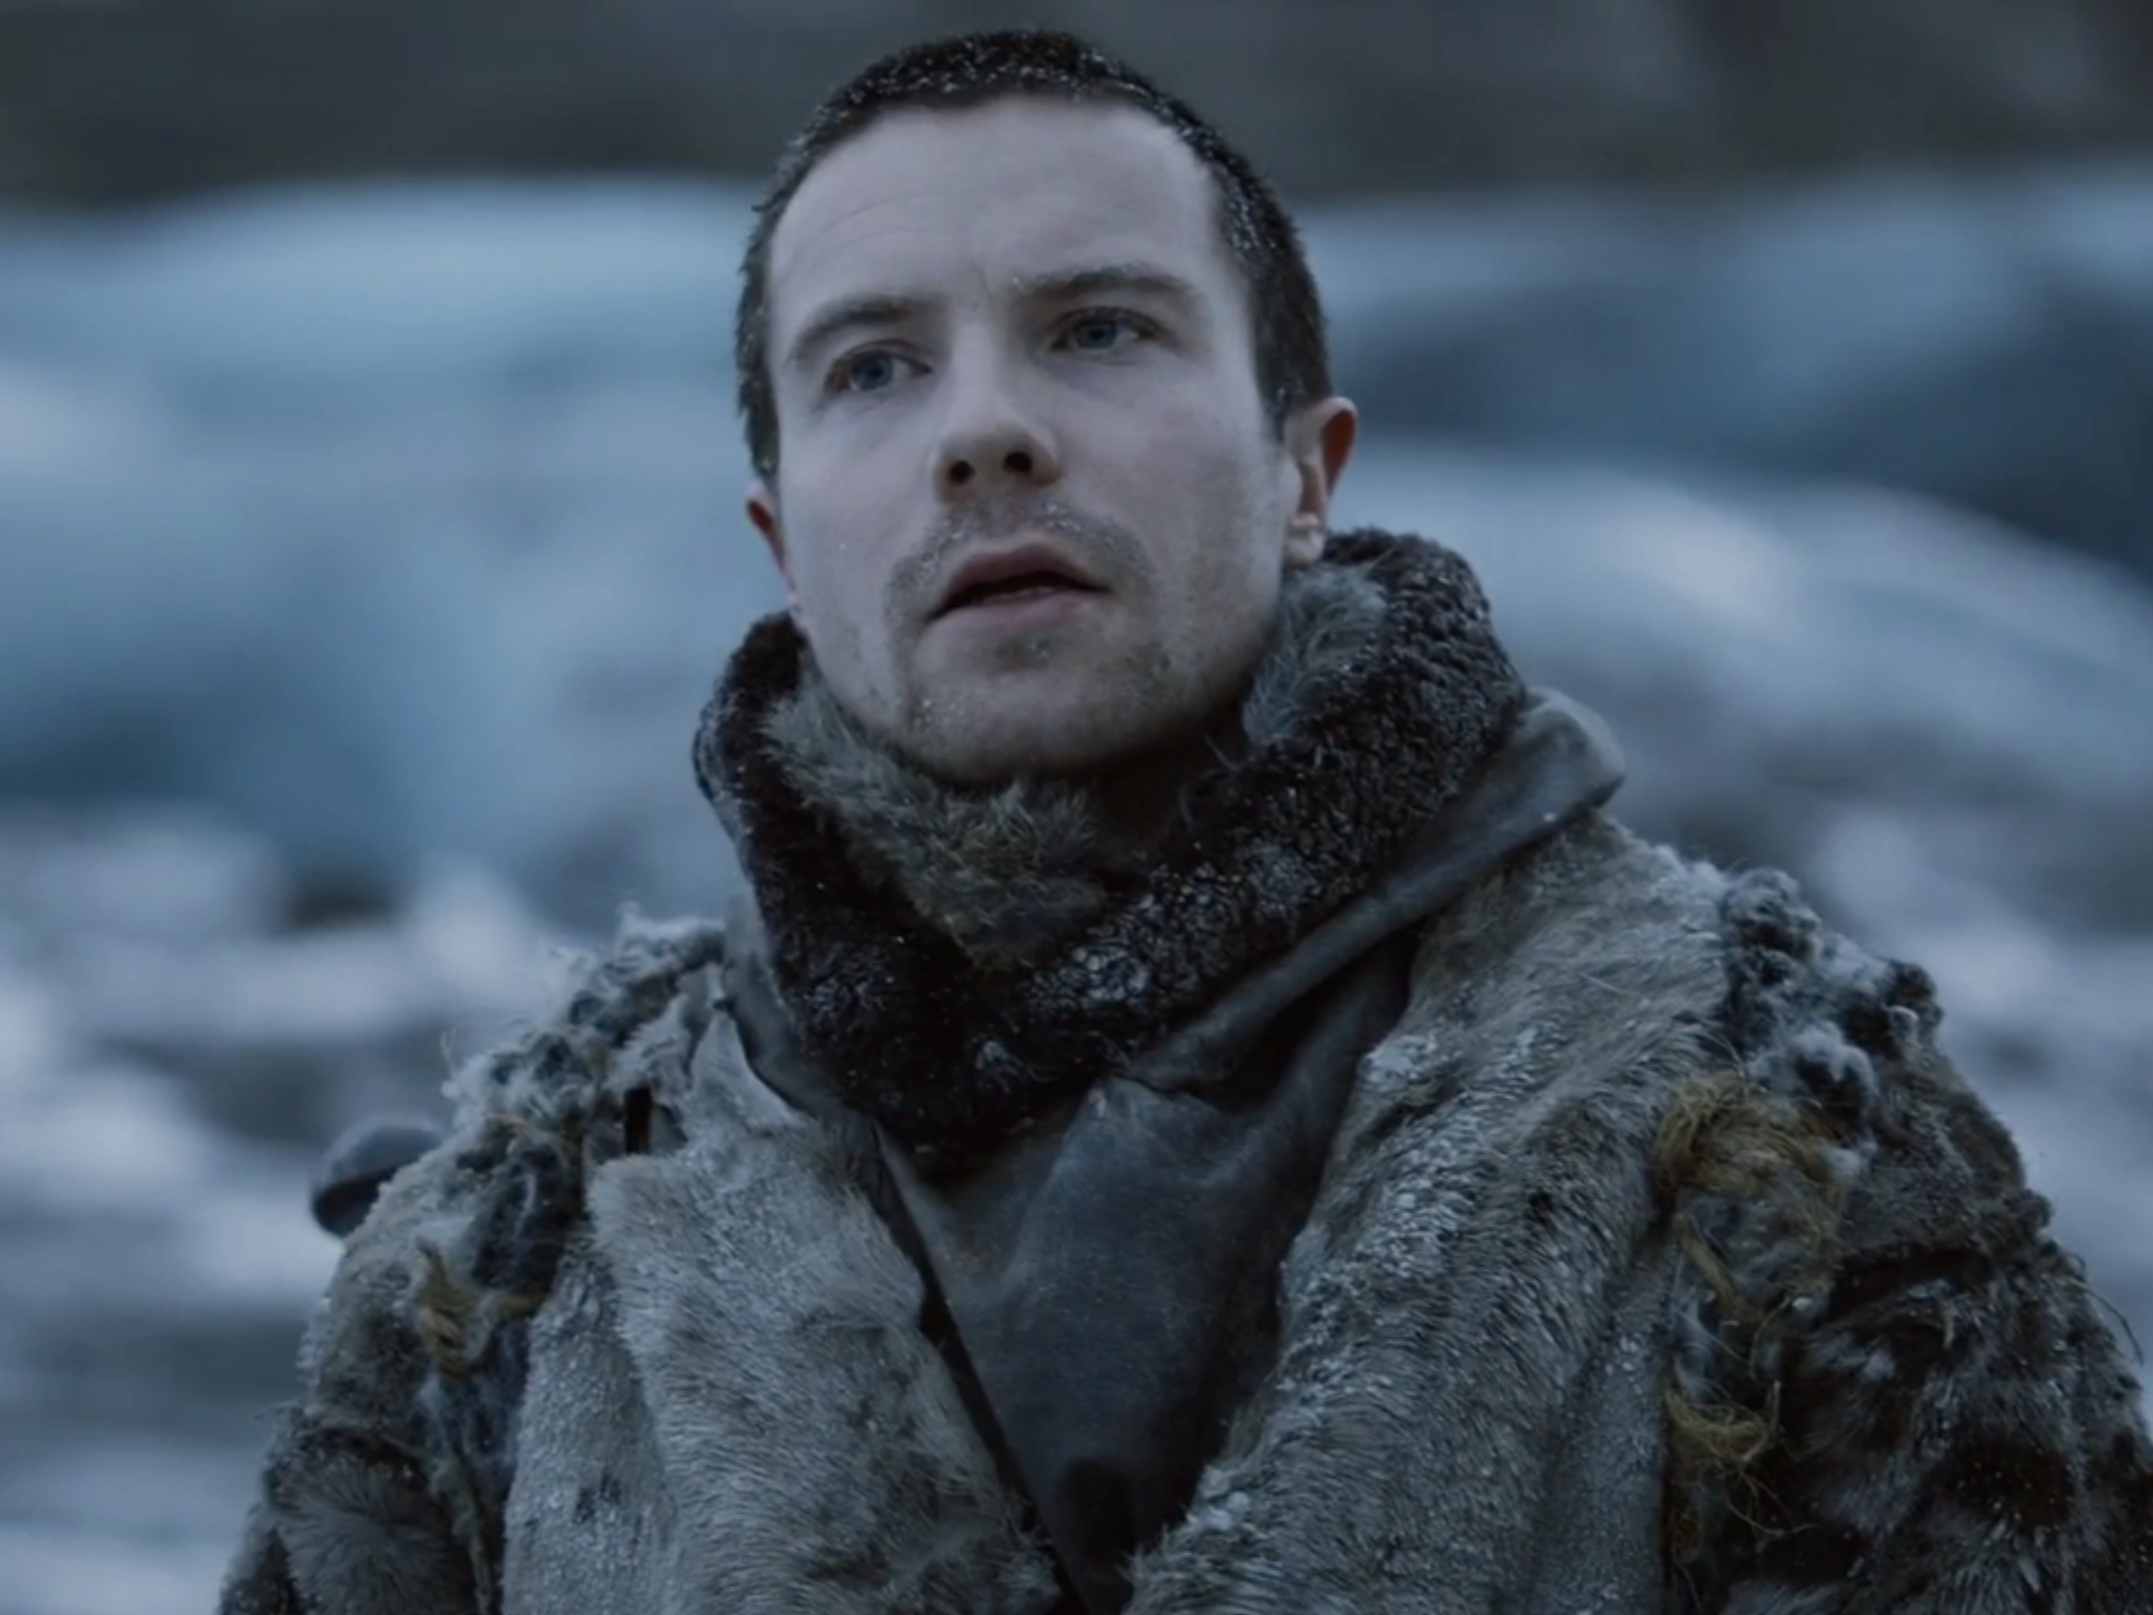 Gendry is officially the most athletic character on 'Game